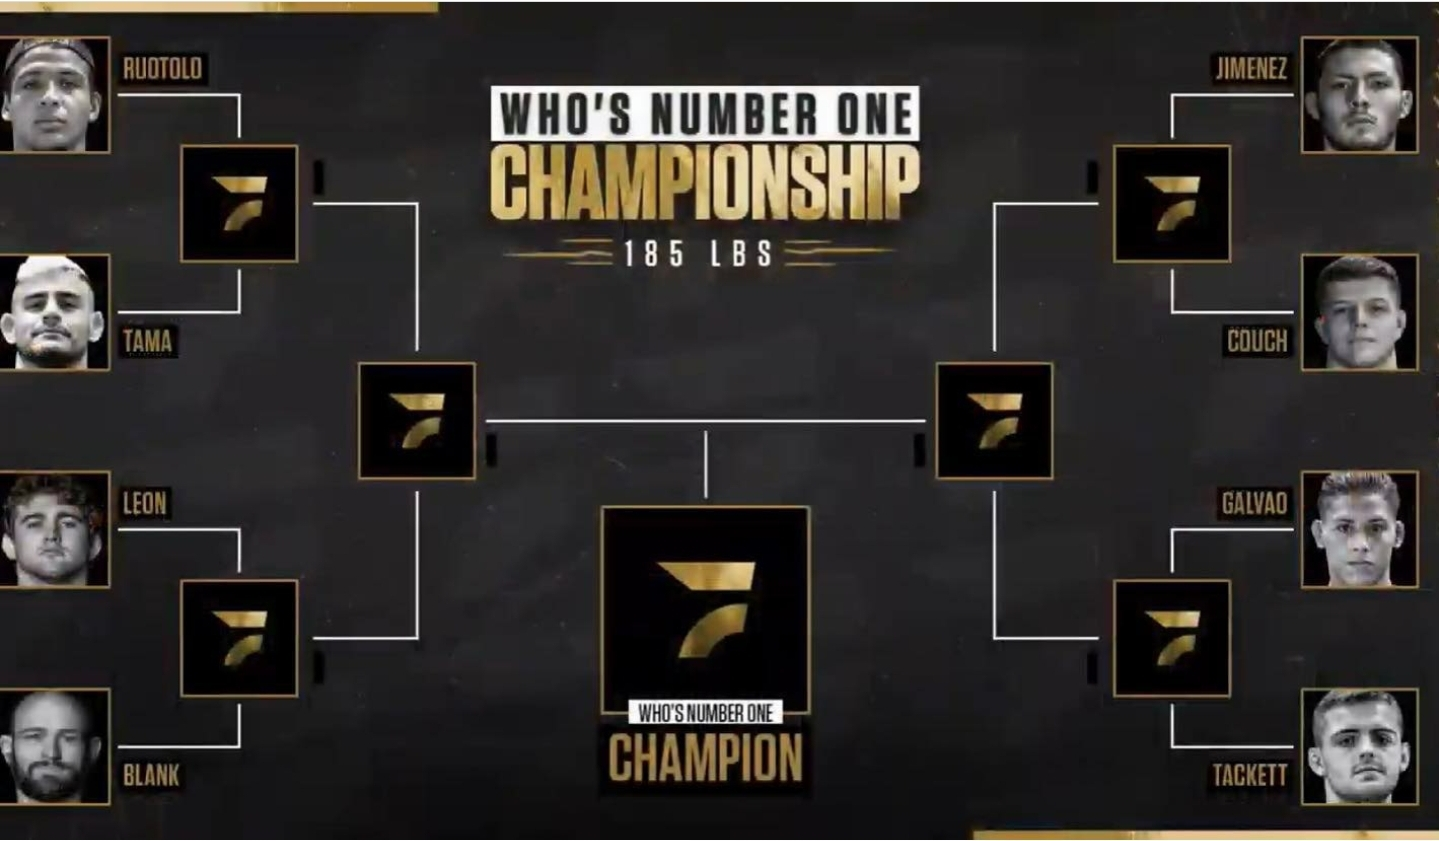 Who's Number One Championship